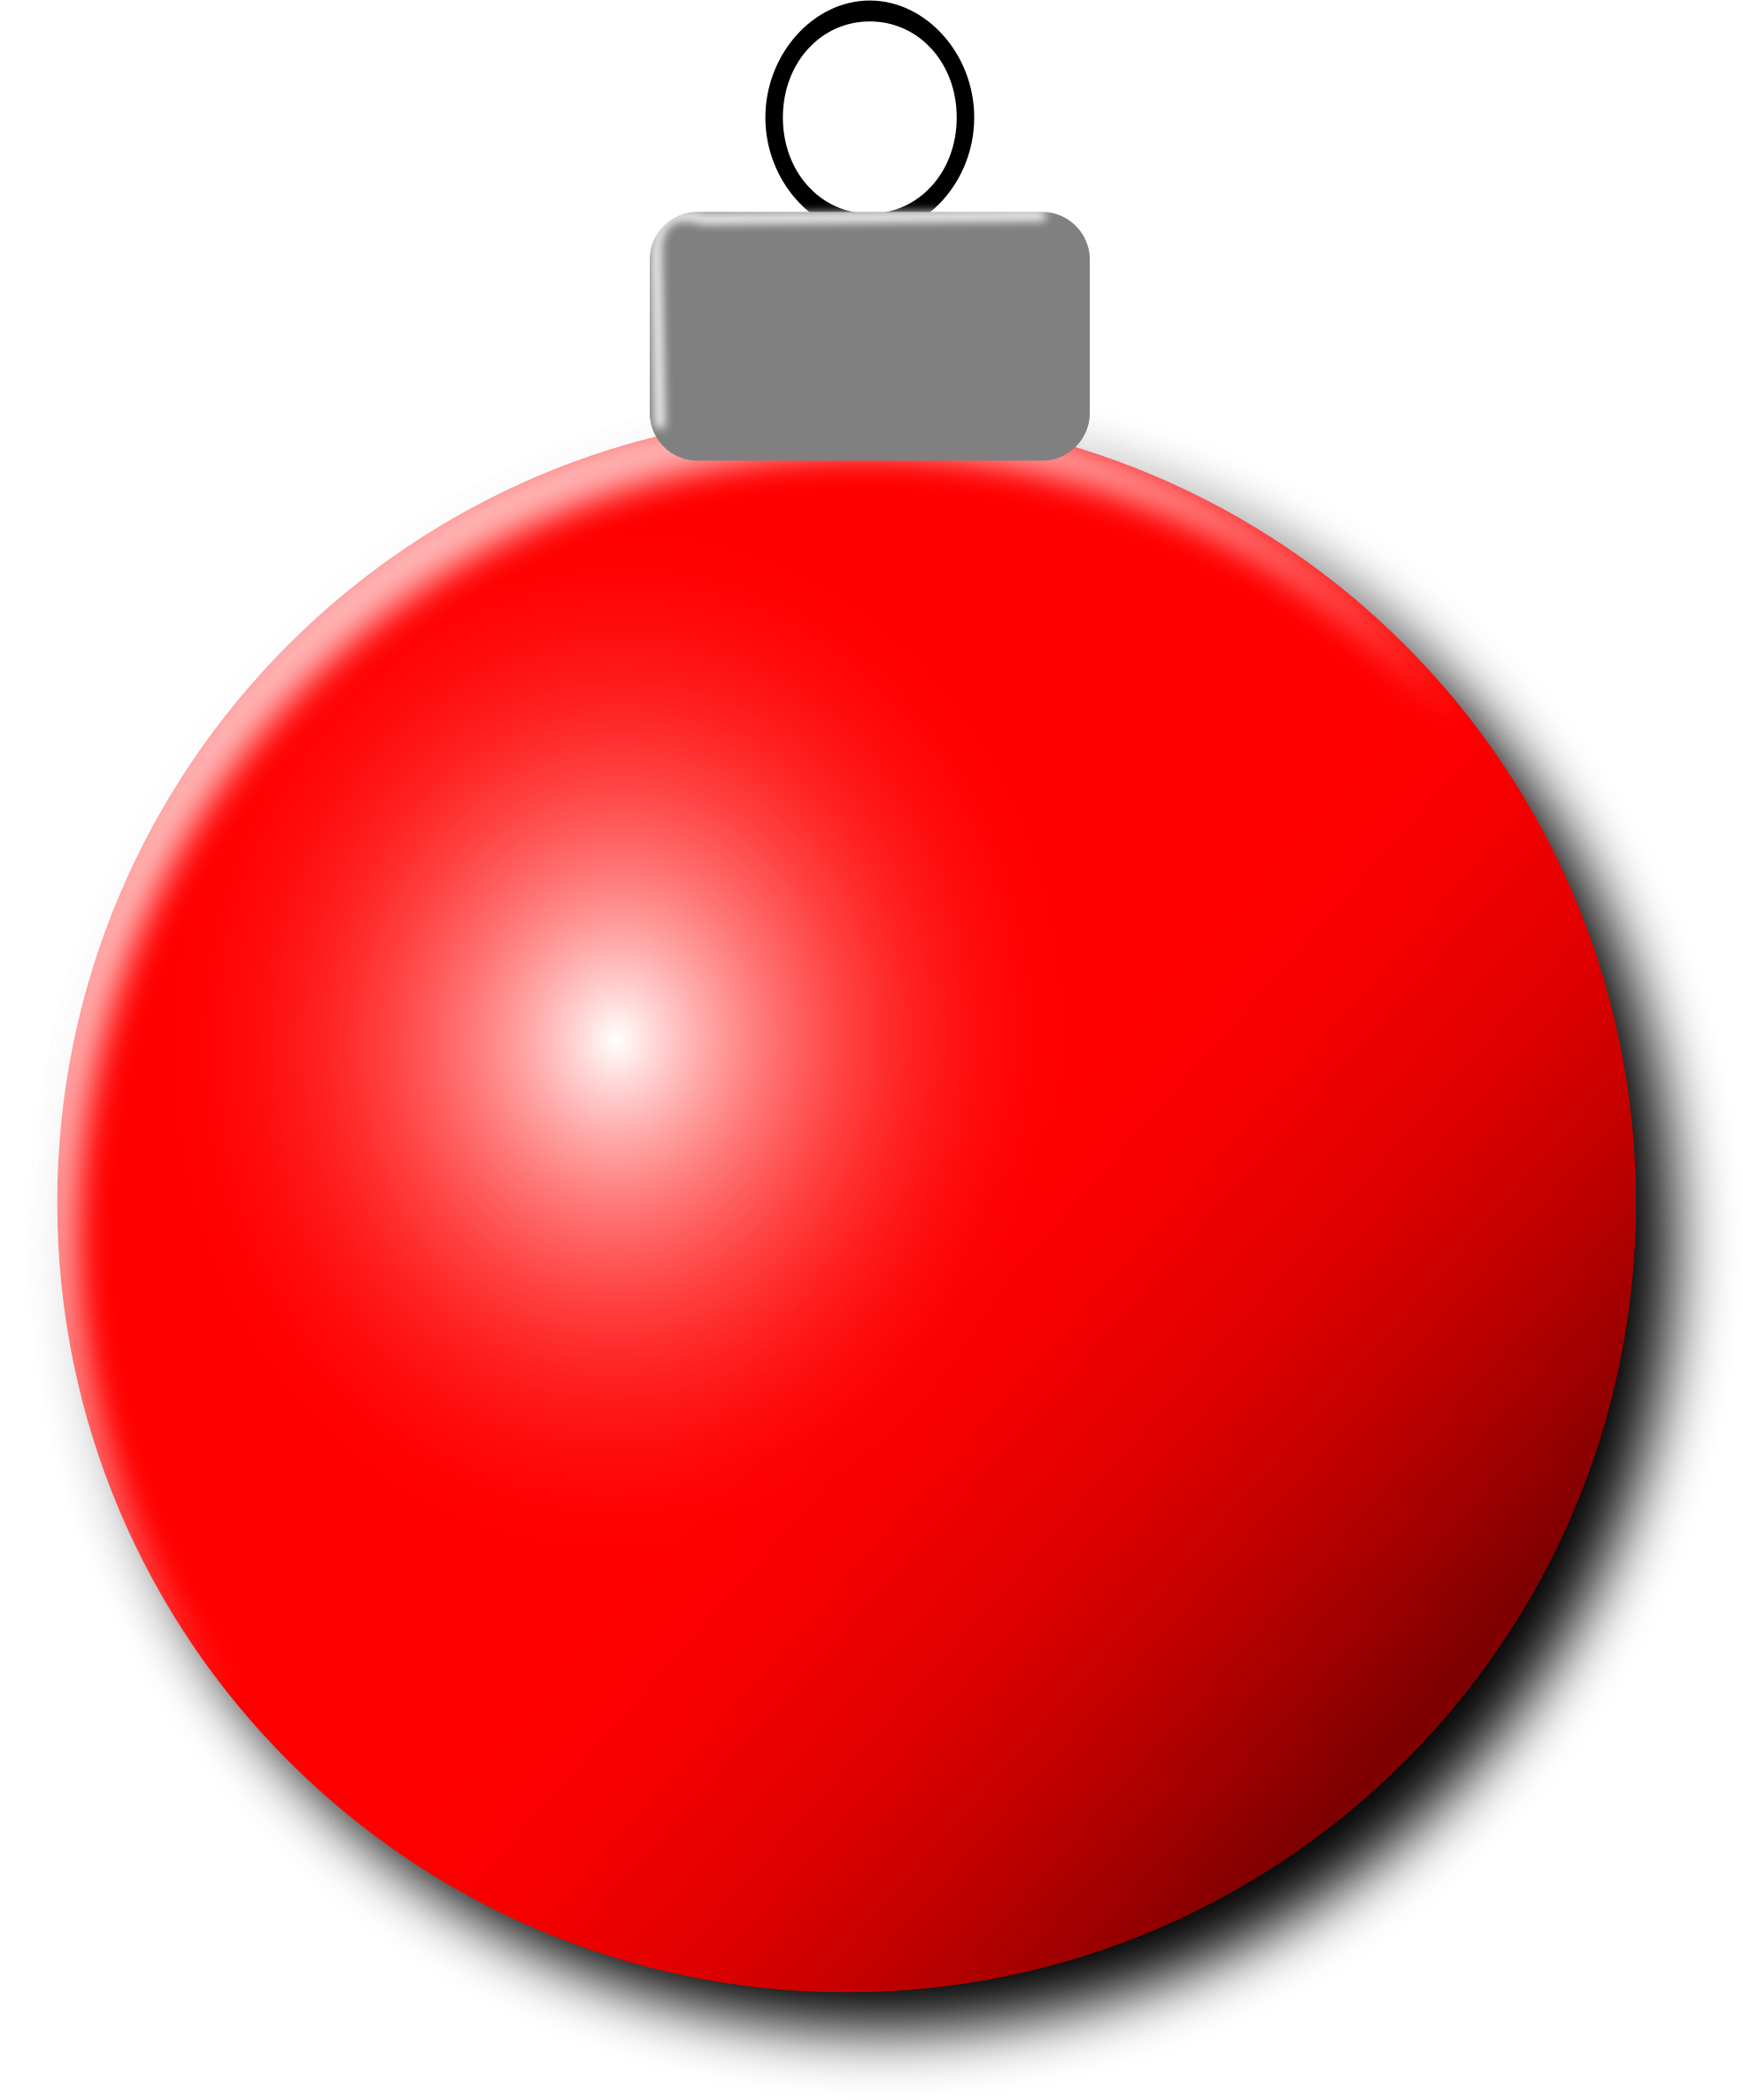 Christmas Ornament by algotruneman